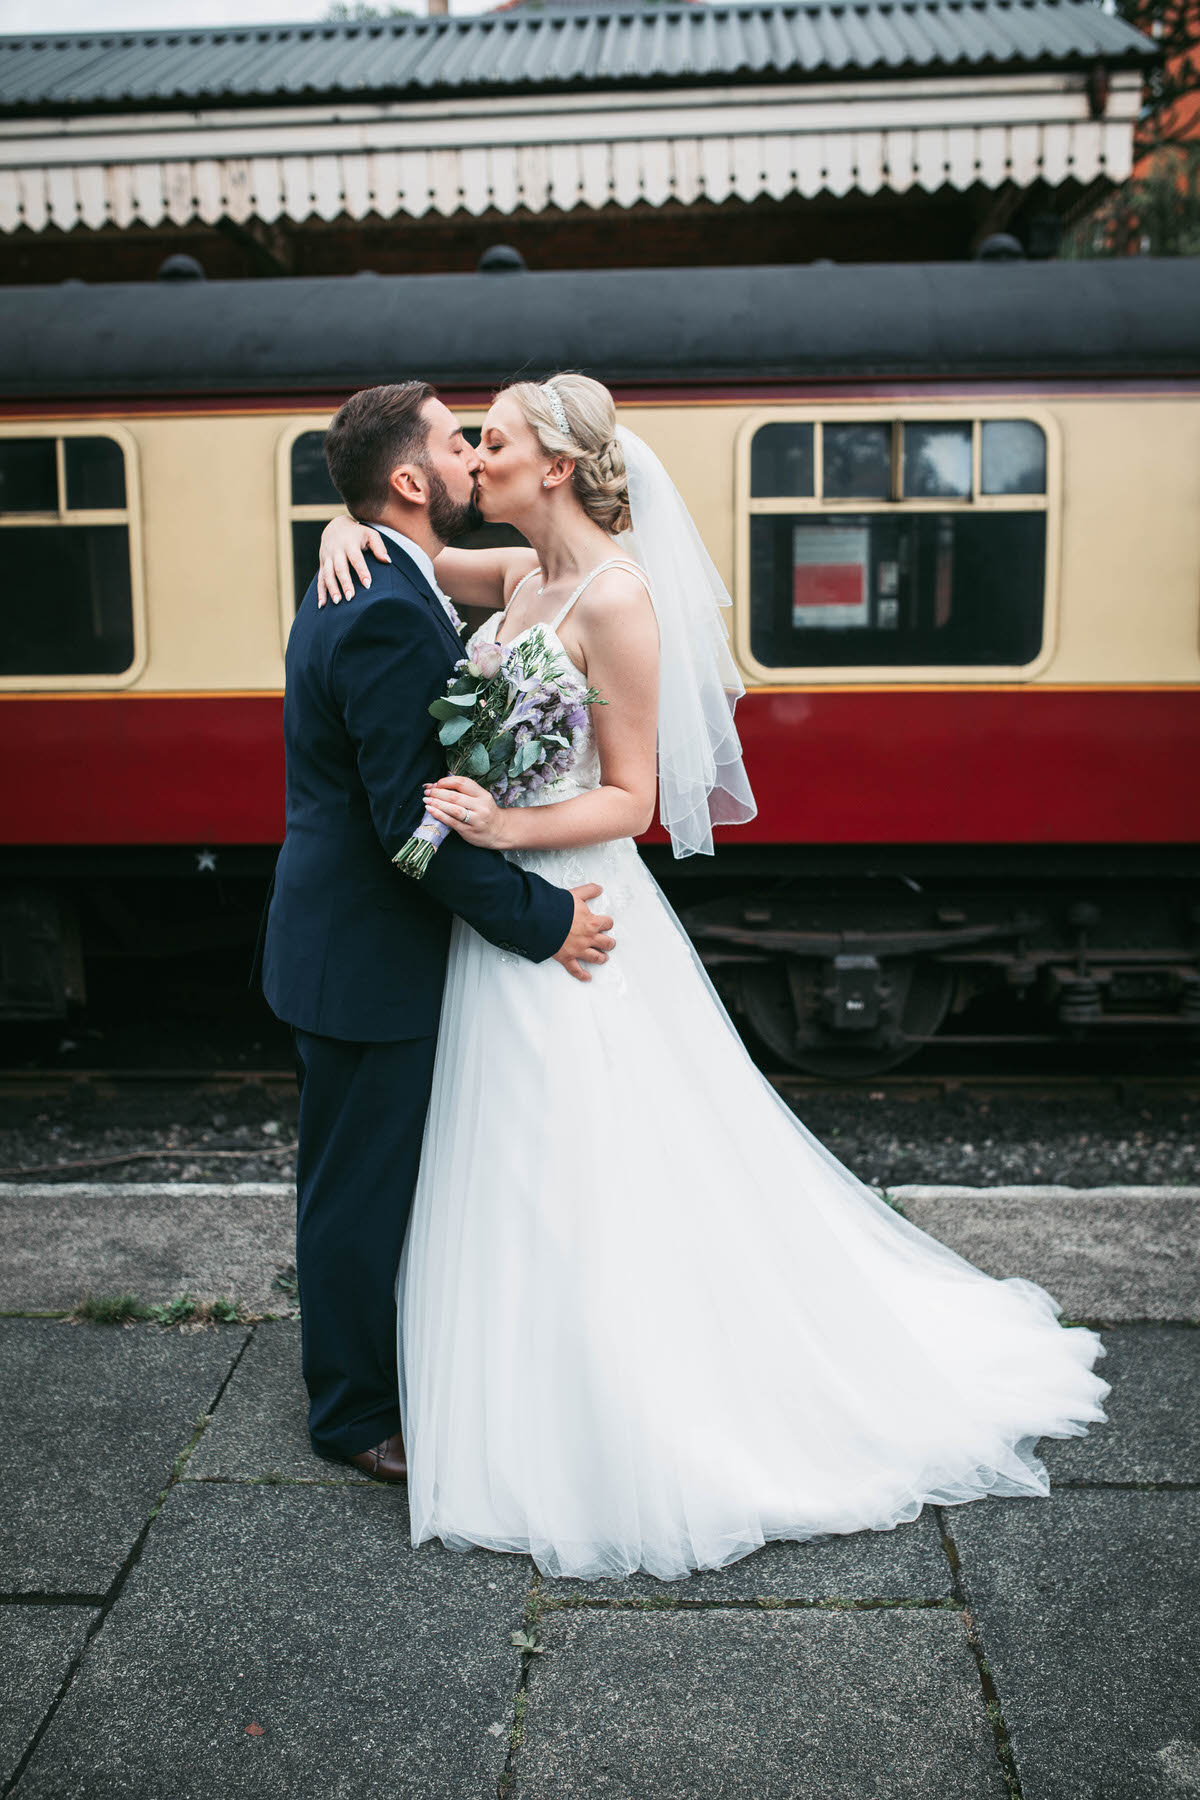 kisses in front of a train at llangollen railway station